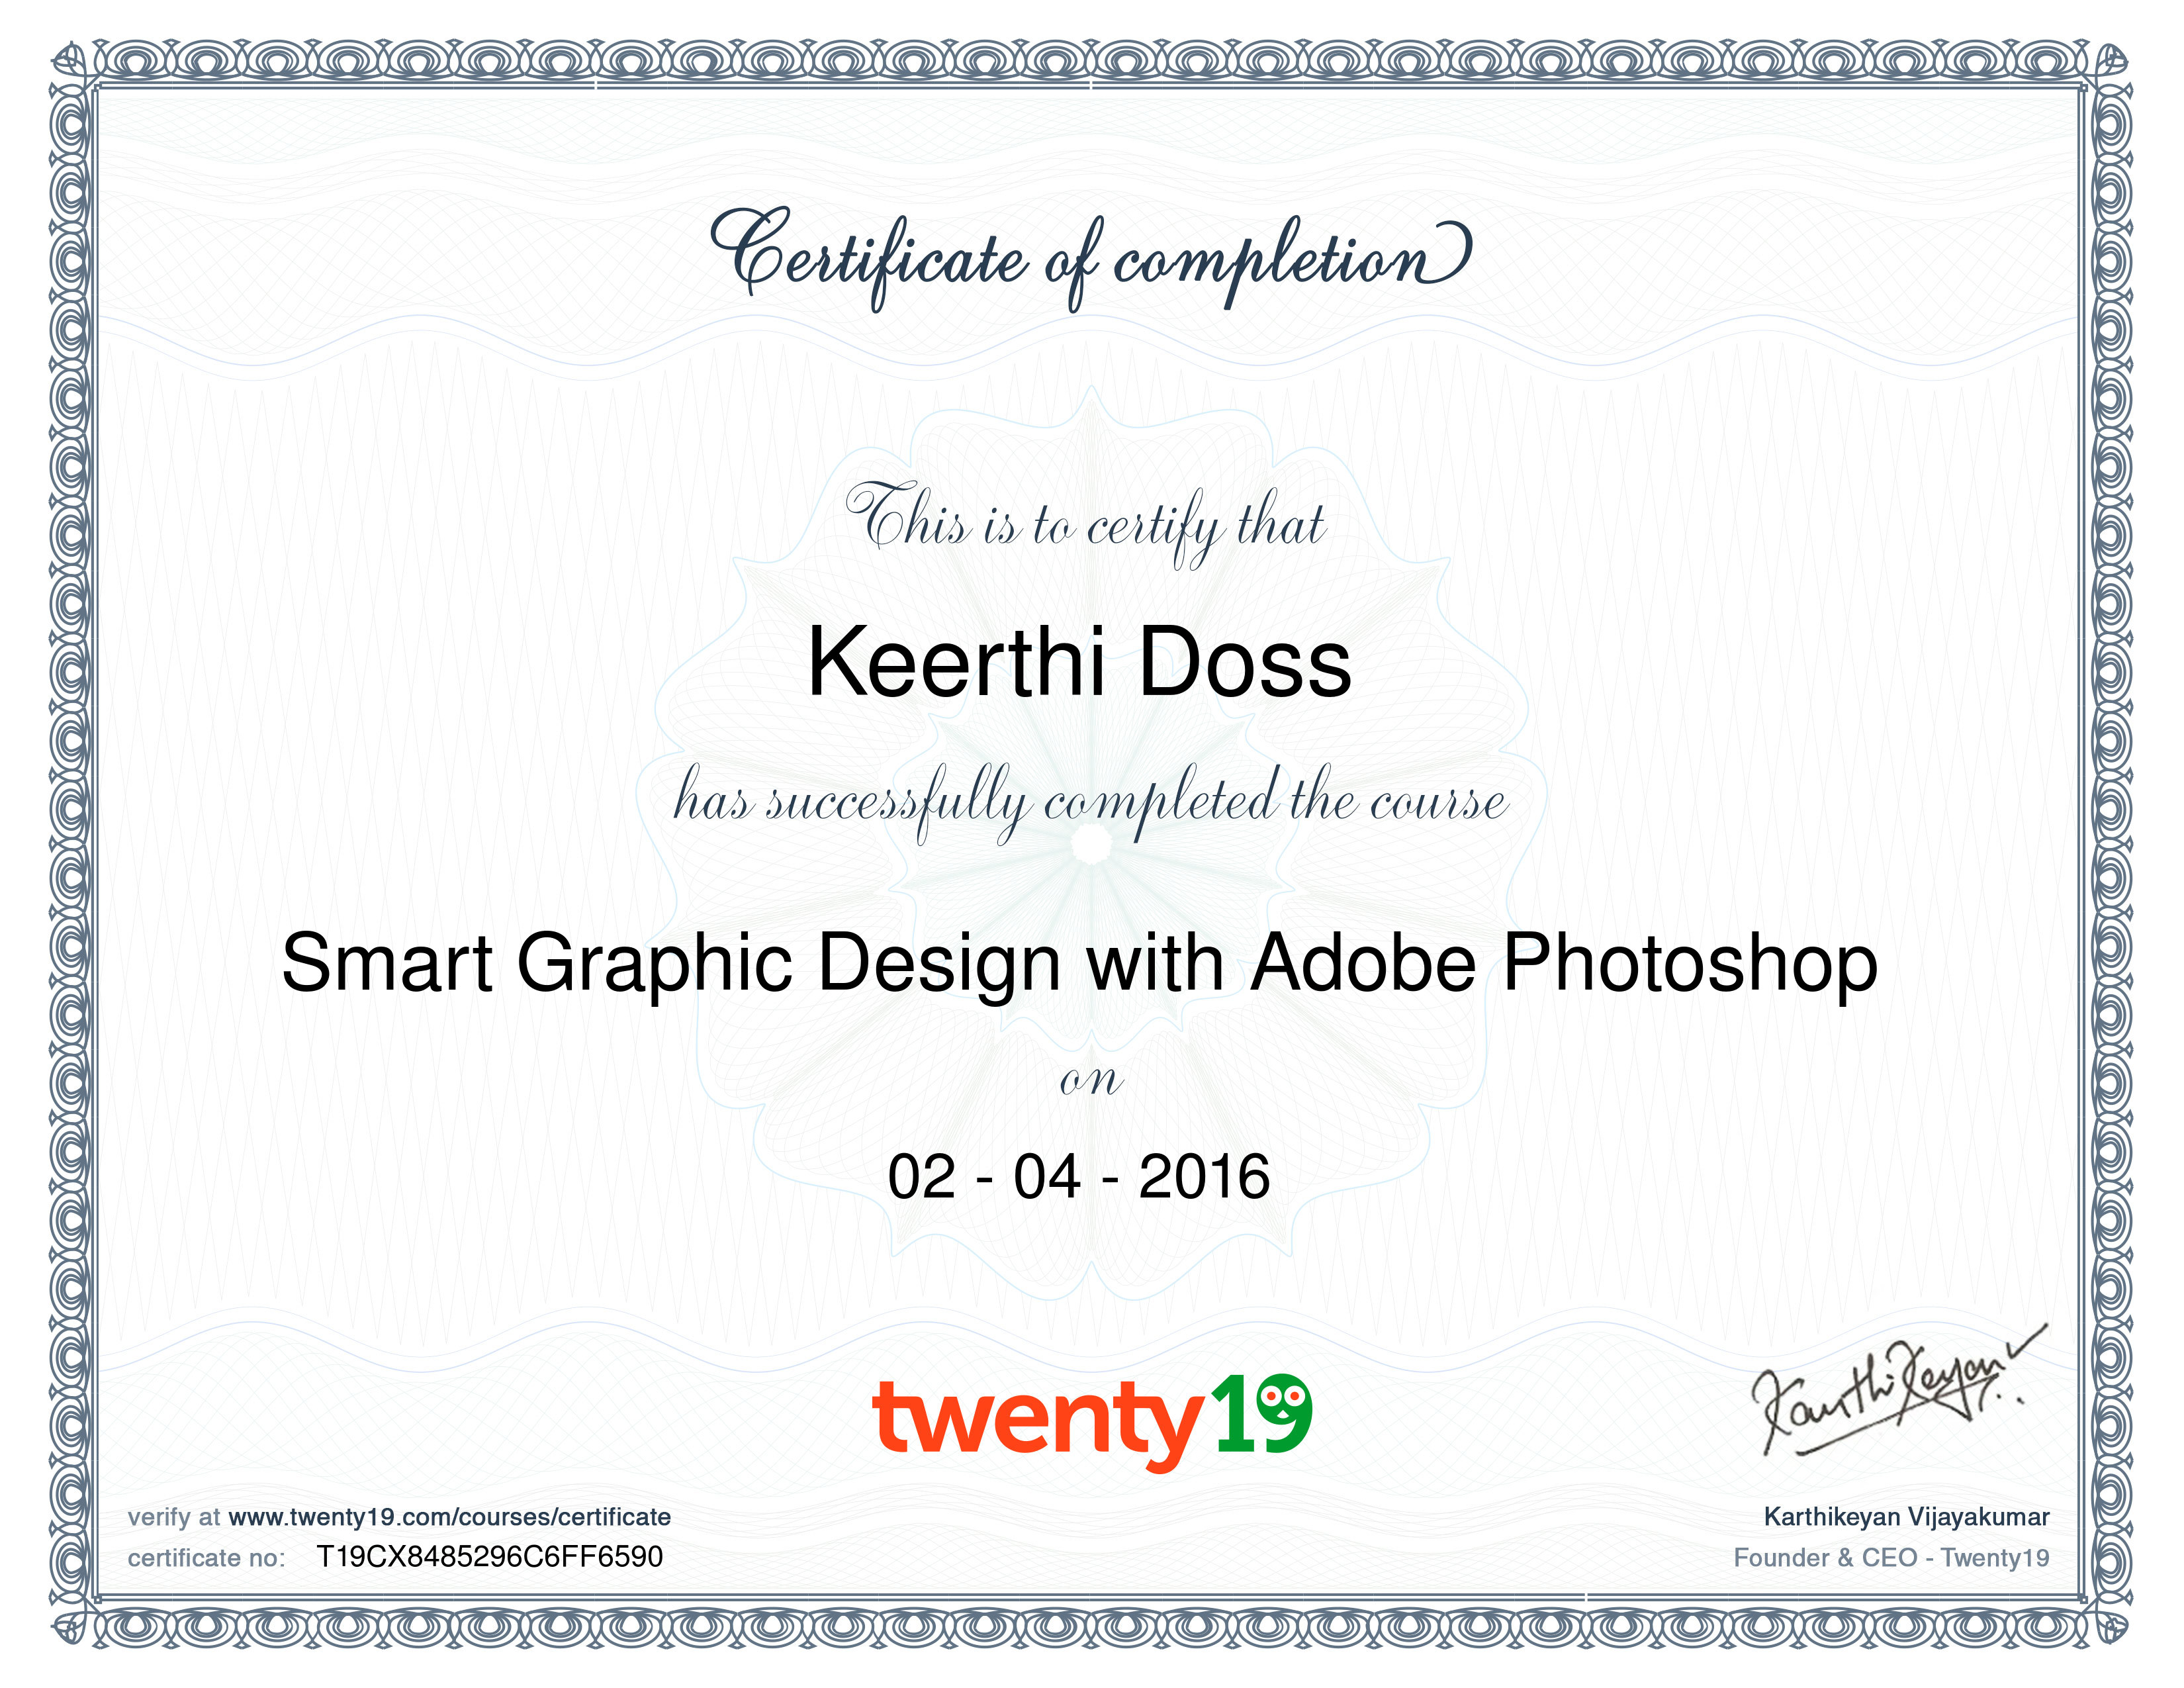 marketing-Adobe Certified Expert in Photoshop -certificate template-psd-doc-editable